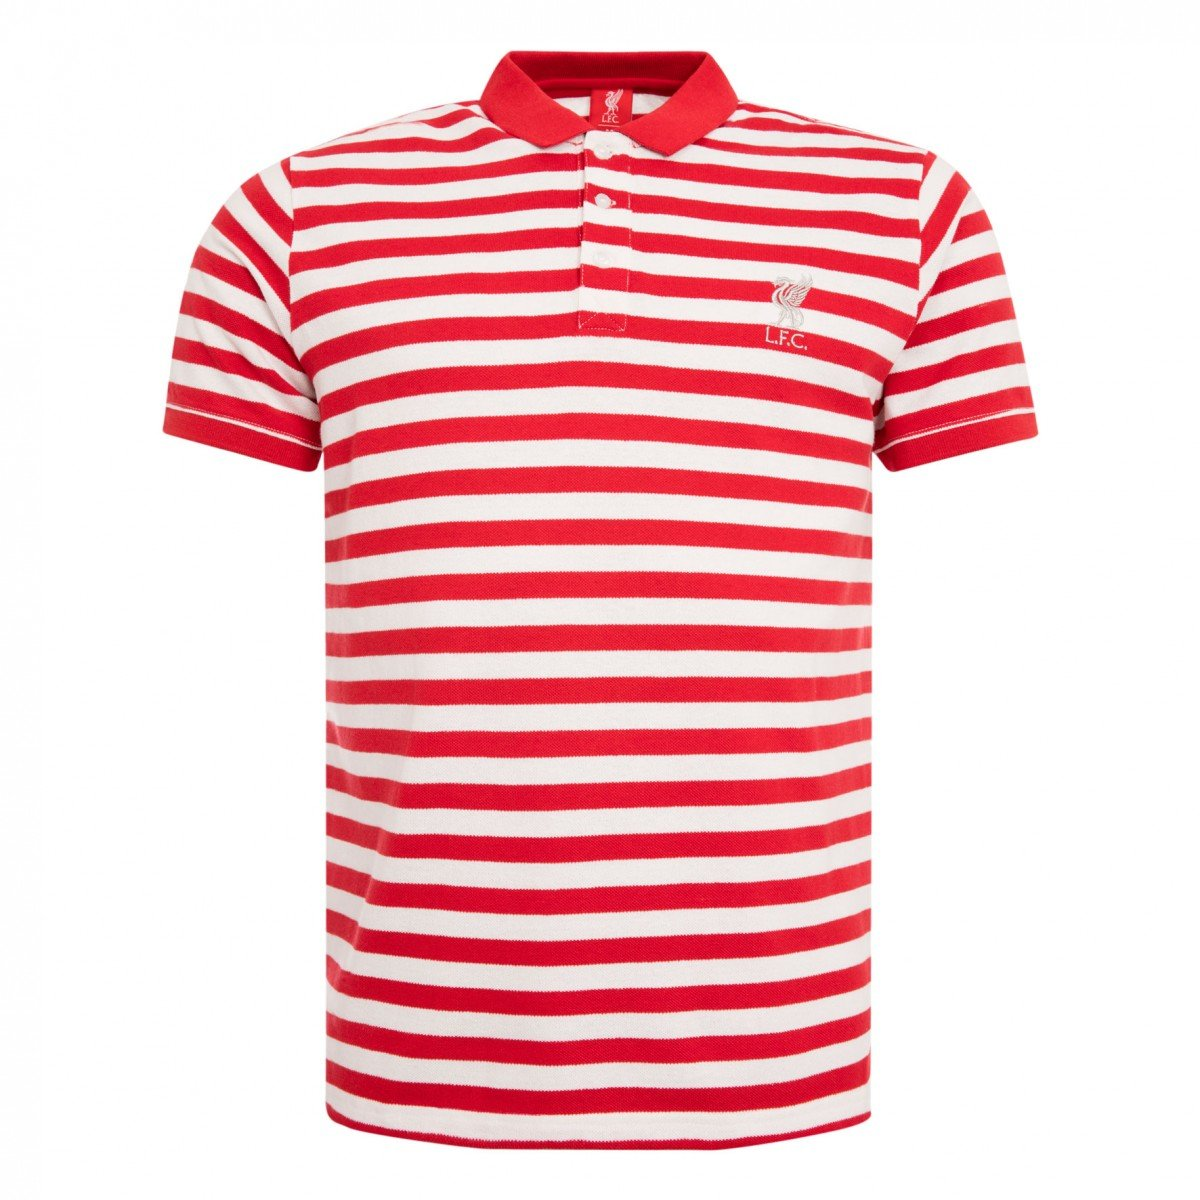 FC Liverpool Connections insby Stripe Polo Camiseta, Rojo/Blanco ...